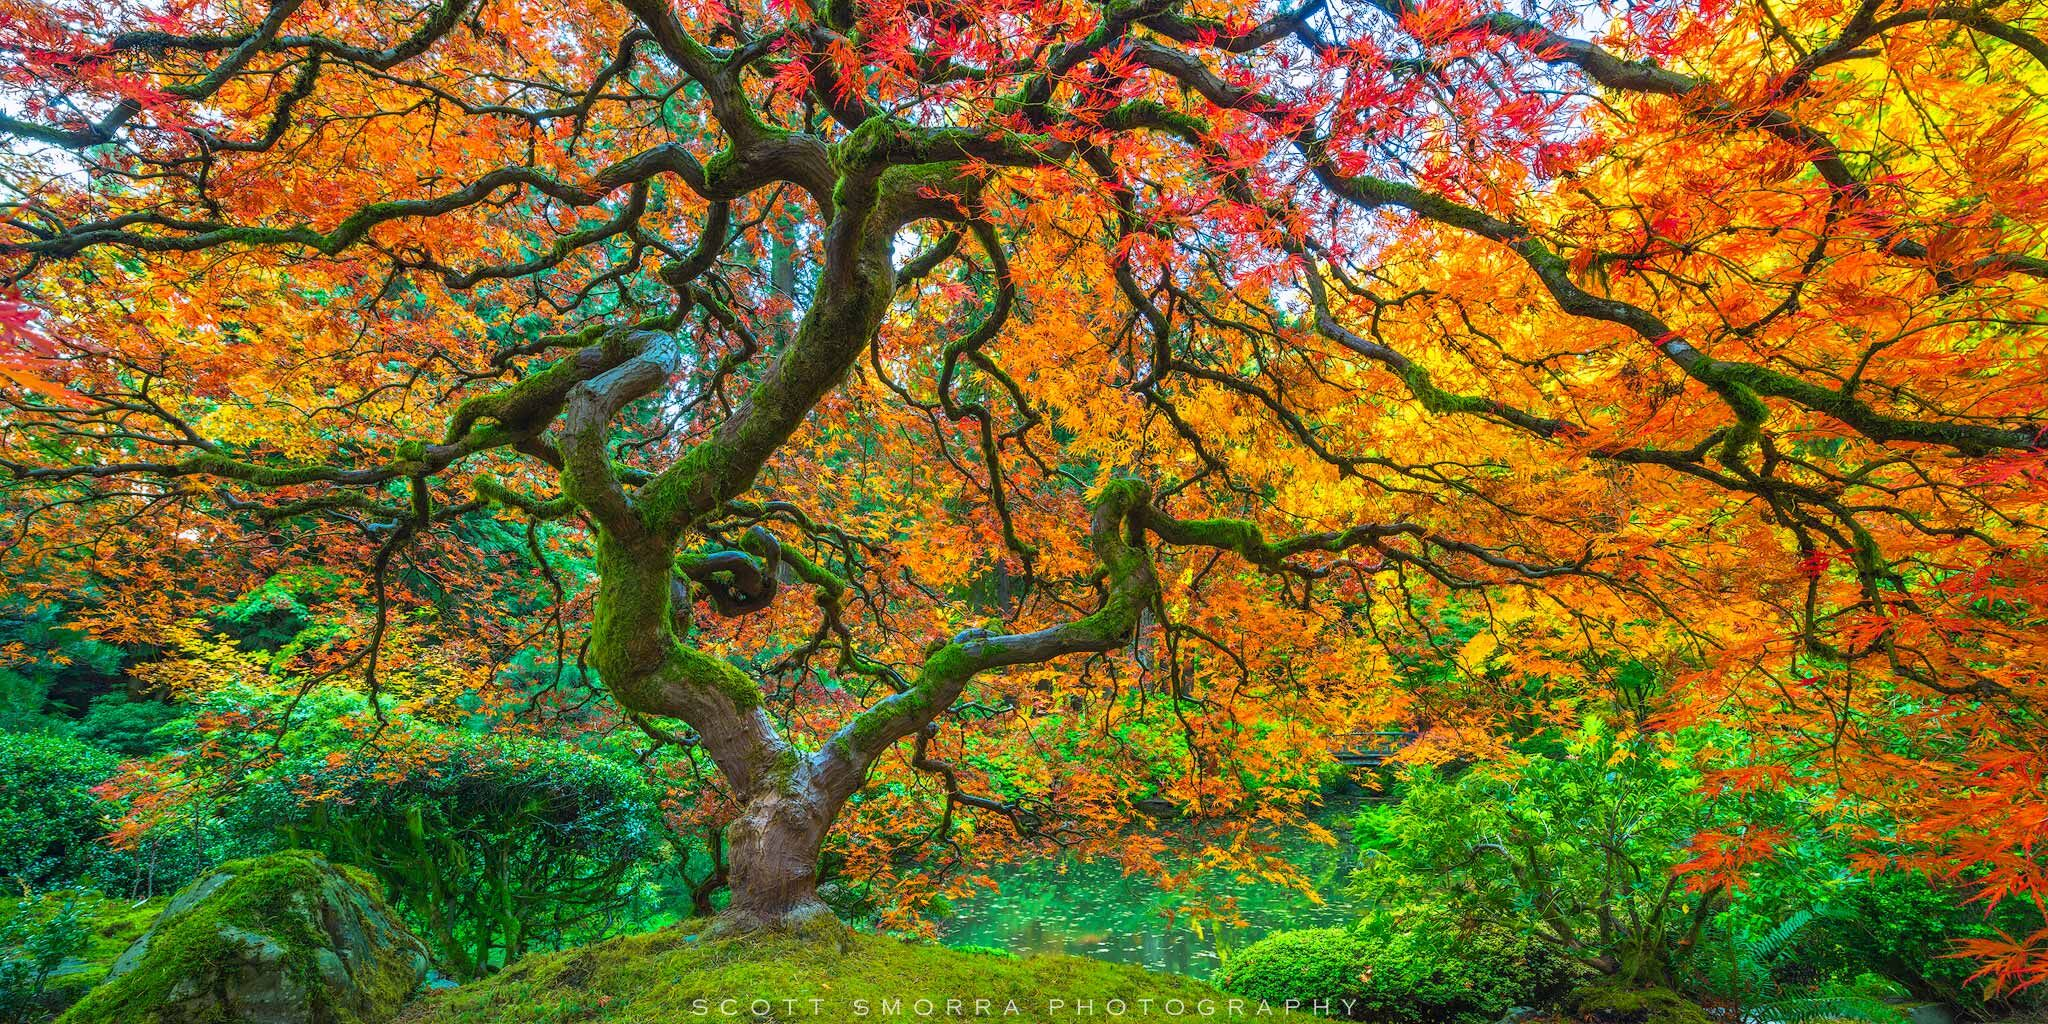 Order your print online today! A perfect mixture of autumn colors at the famous Laceleaf Japanese Maple Tree at the Portland Japanese Garden, Portland, Oregon.